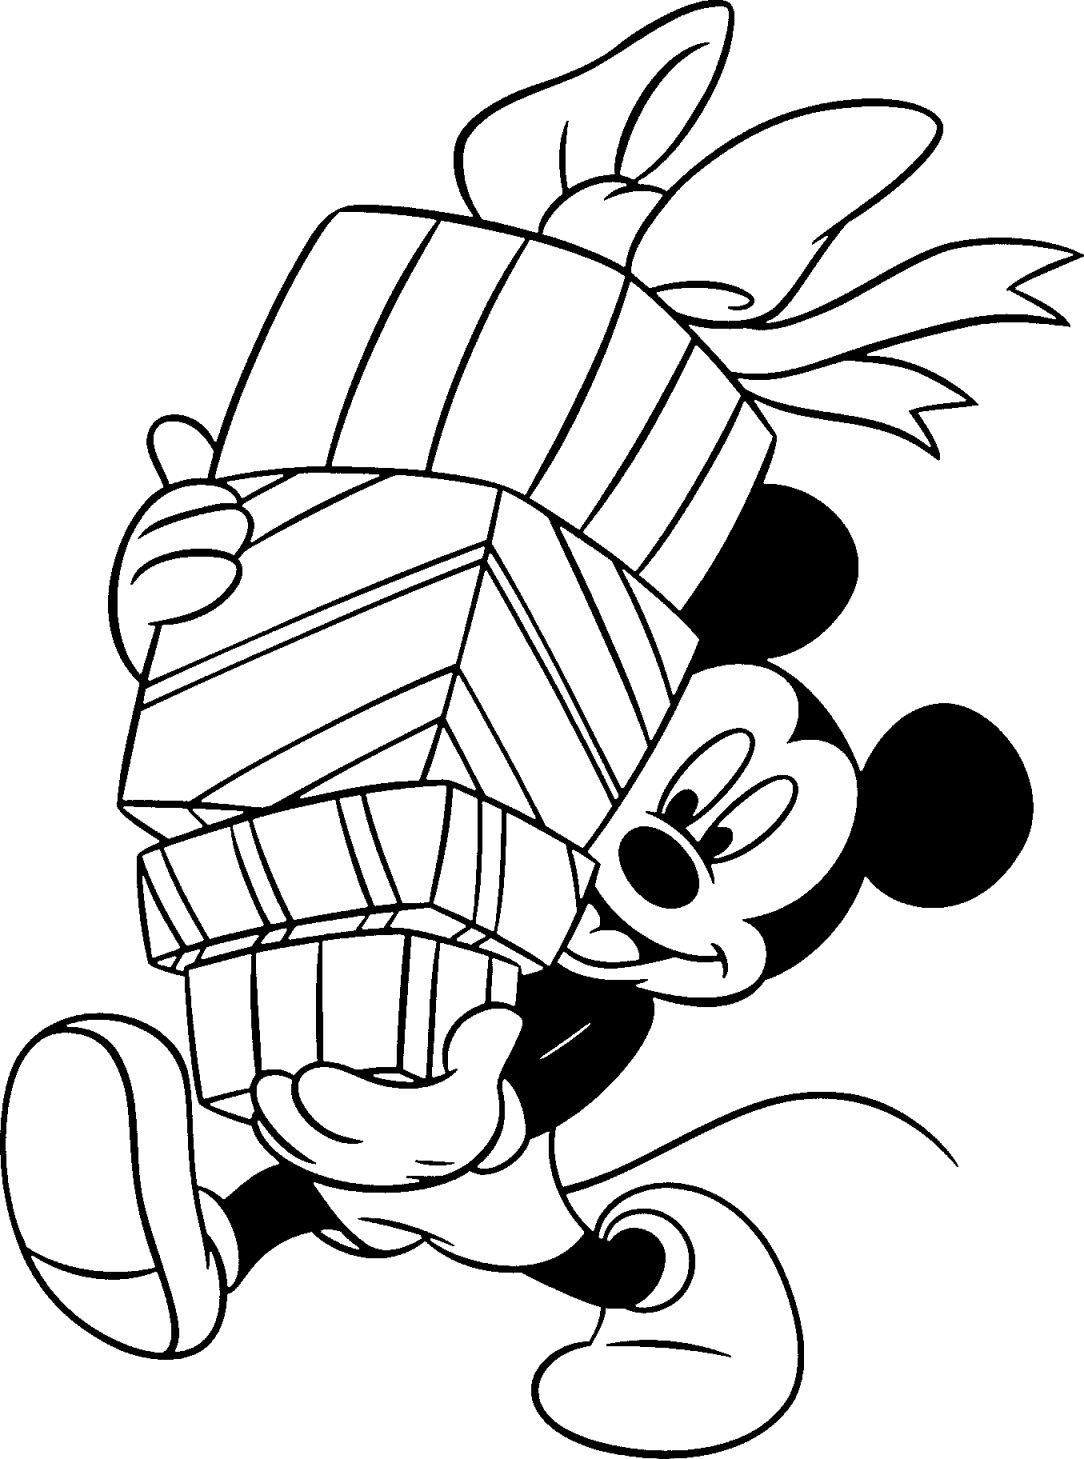 coloring disney pages 33 free disney coloring pages for kids baps disney pages coloring